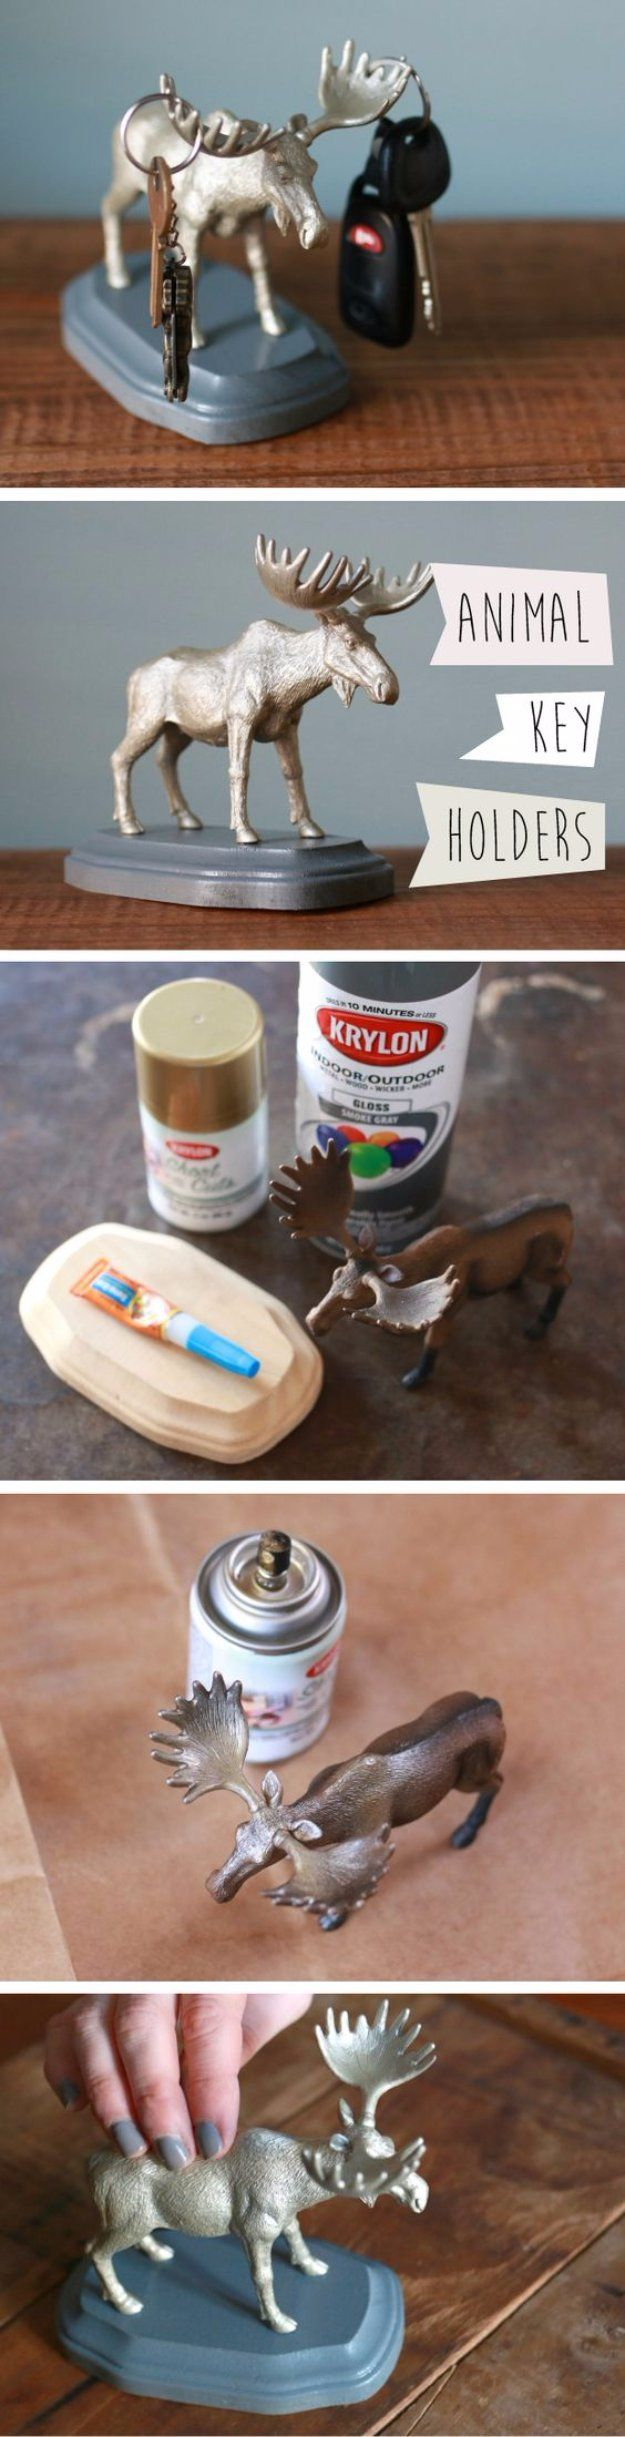 Easy Crafts To Make and Sell - Animal Key Holders - Cool Homemade Craft Projects You Can Sell On Etsy, at Craft Fairs, Online and in Stores. Quick and Cheap DIY Ideas that Adults and Even Teens Can Make http://diyjoy.com/easy-crafts-to-make-and-sell